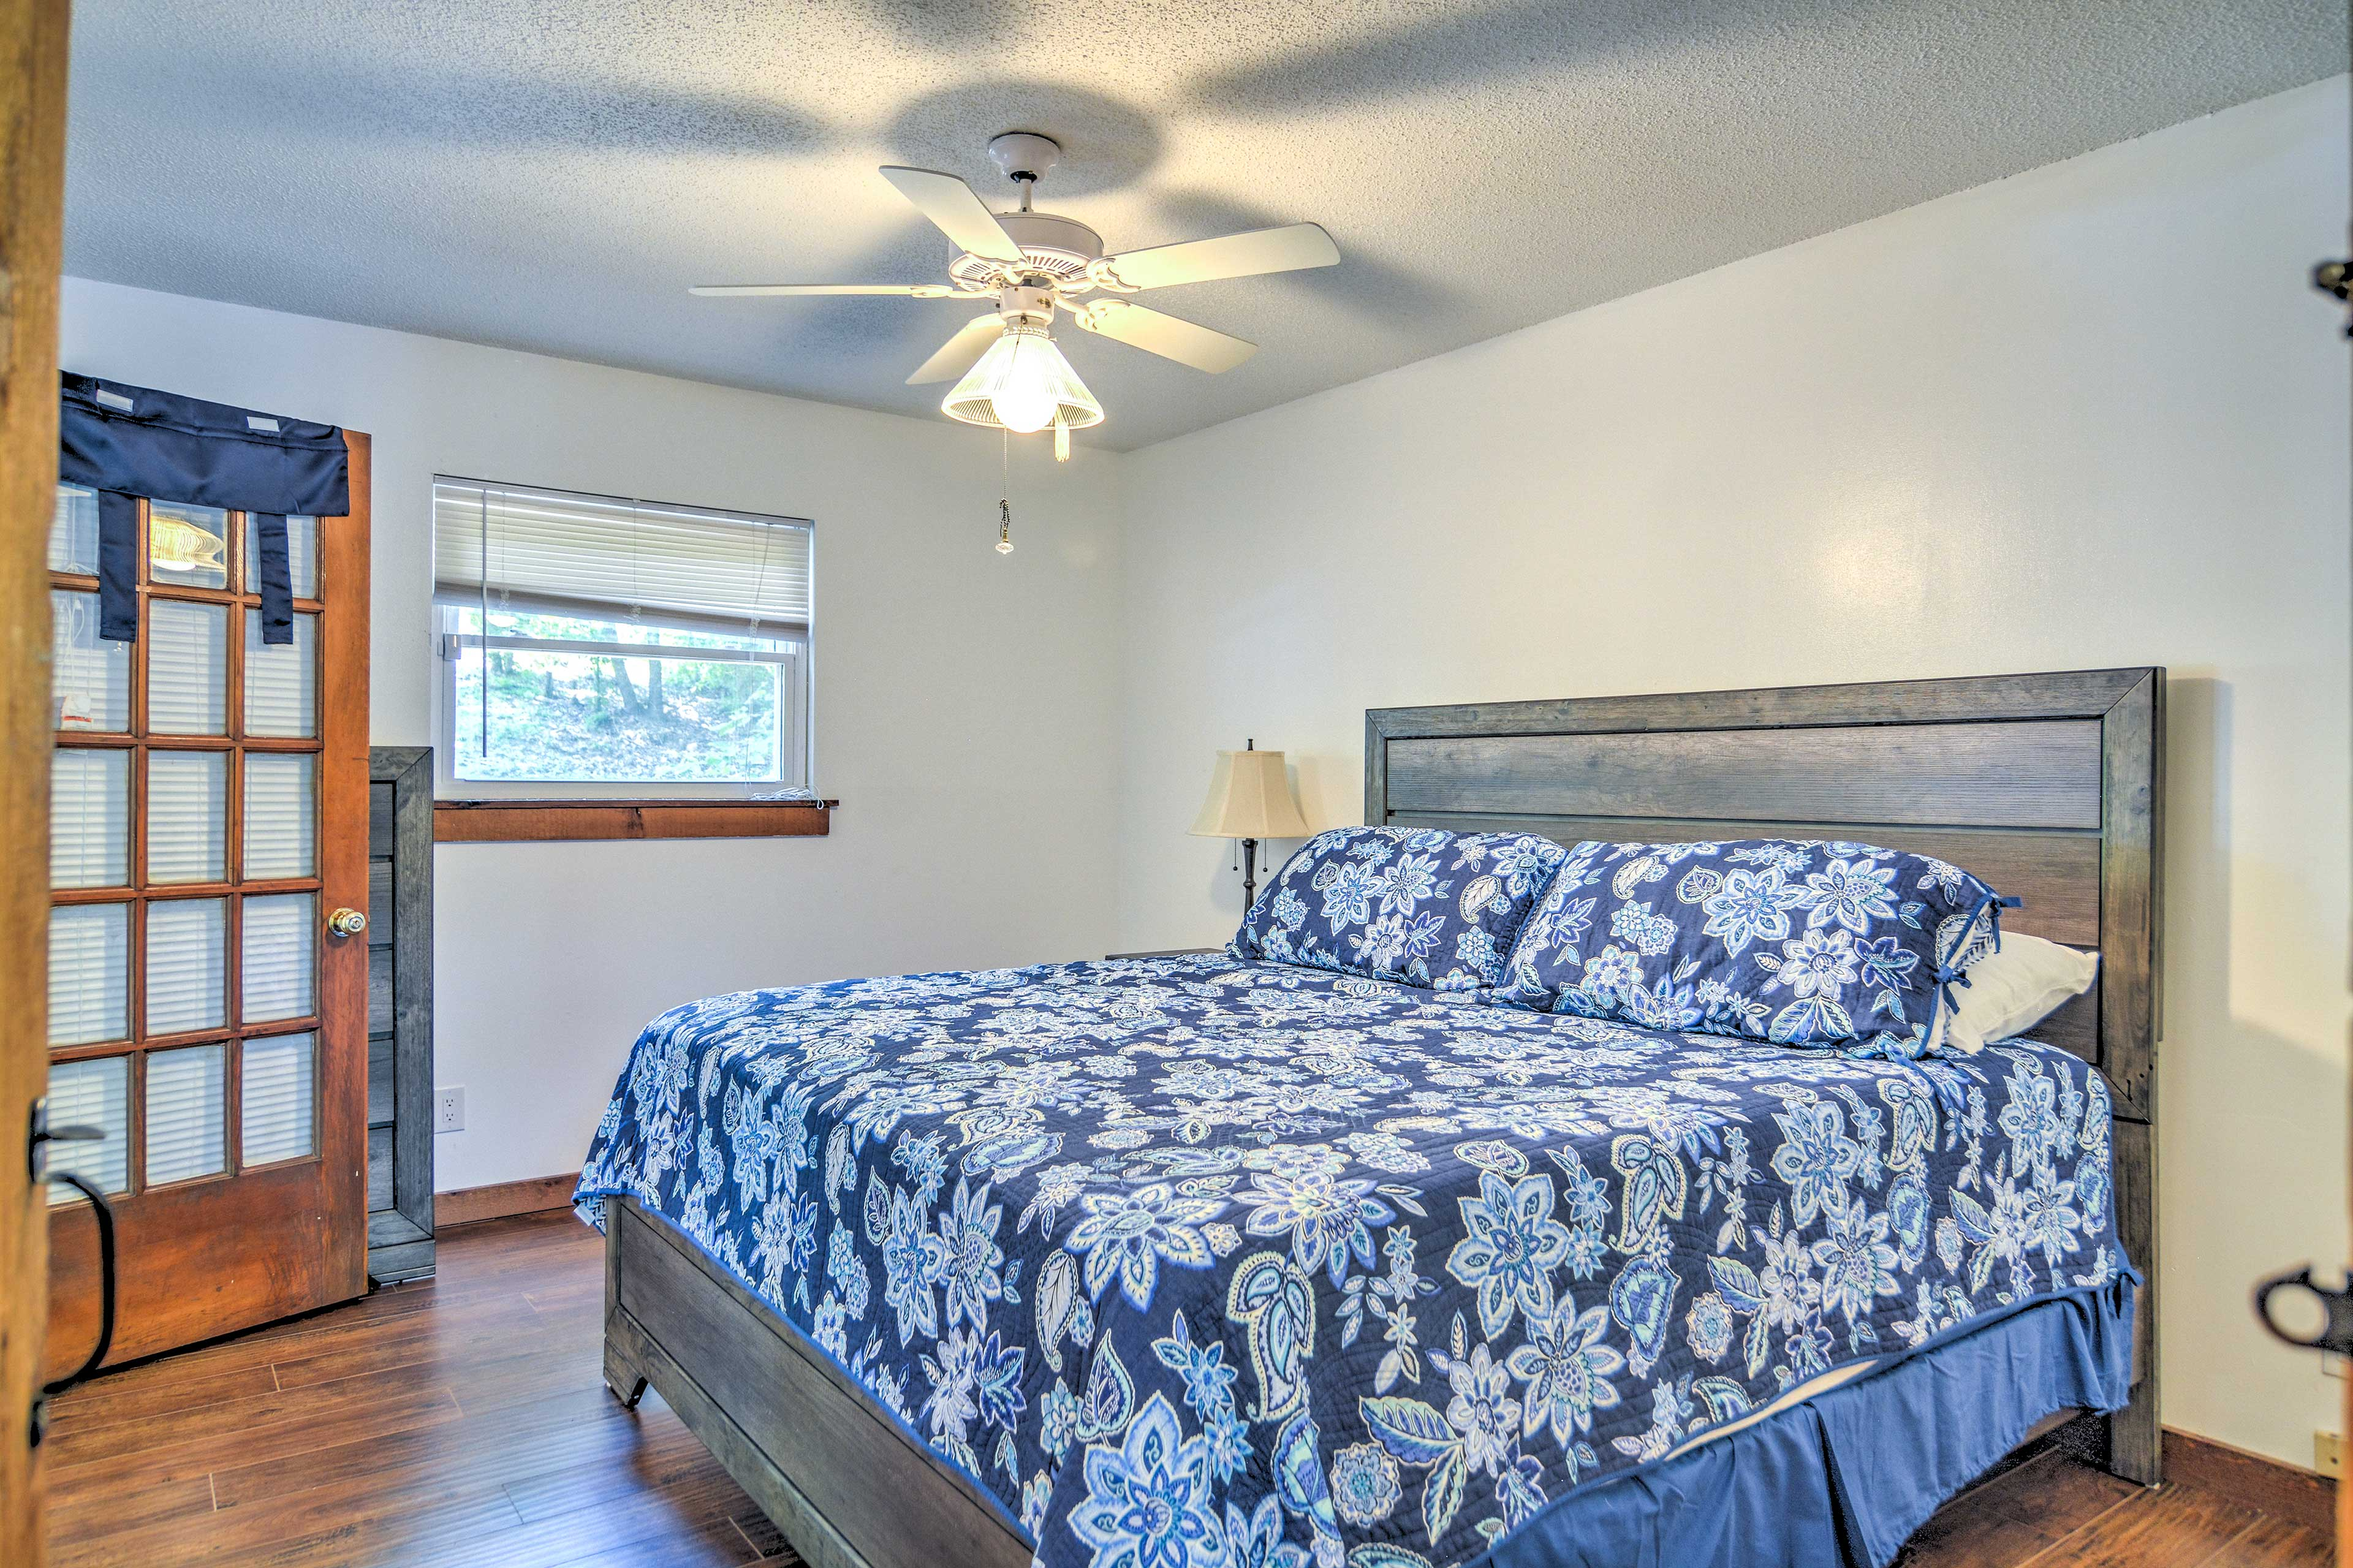 Two guests will sleep comfortably in the king-sized bed in the master bedroom.